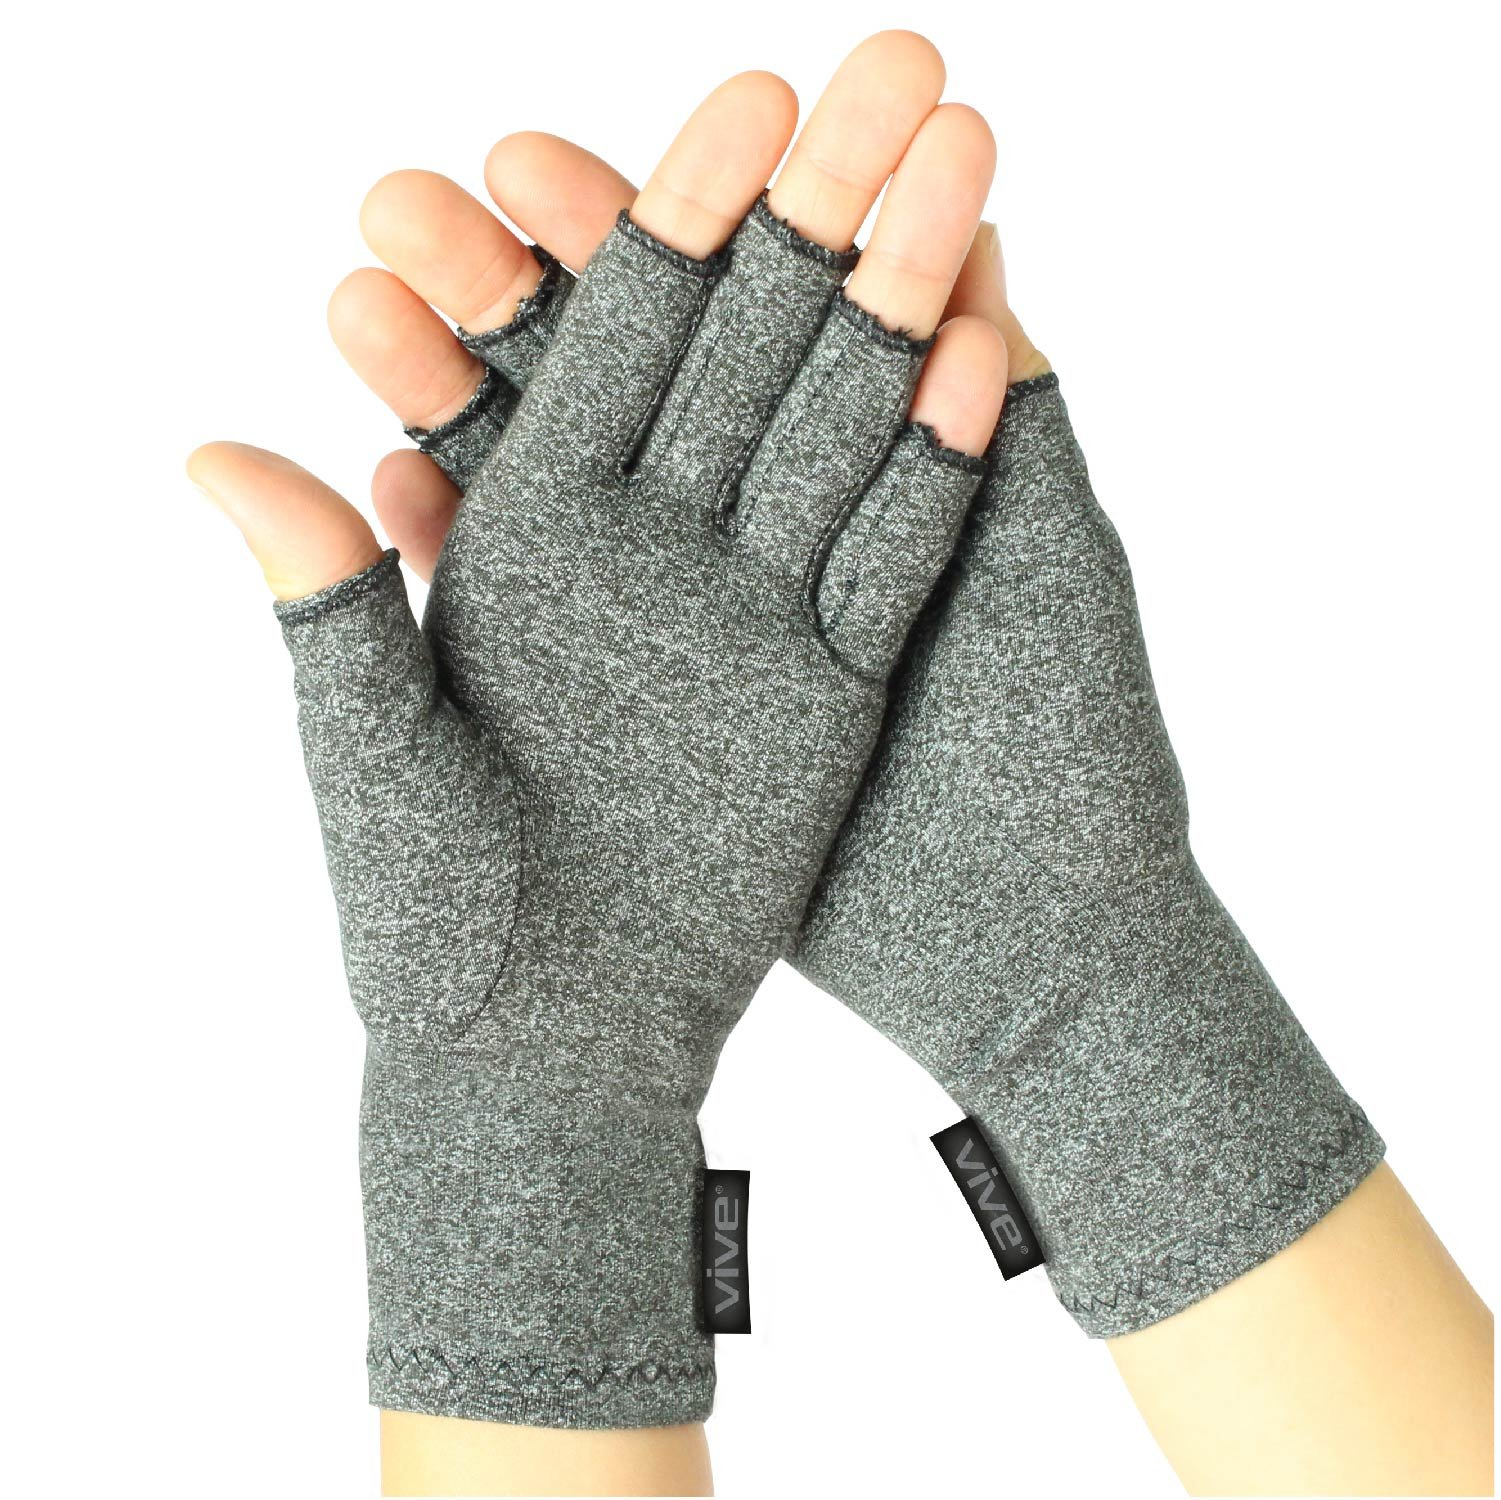 Arthritis Gloves by Vive - Compression Gloves for Rheumatoid & Osteoarthritis - Hand Gloves Provide Arthritic Joint Pain Symptom Relief - Men & Women - Open Finger (Medium)